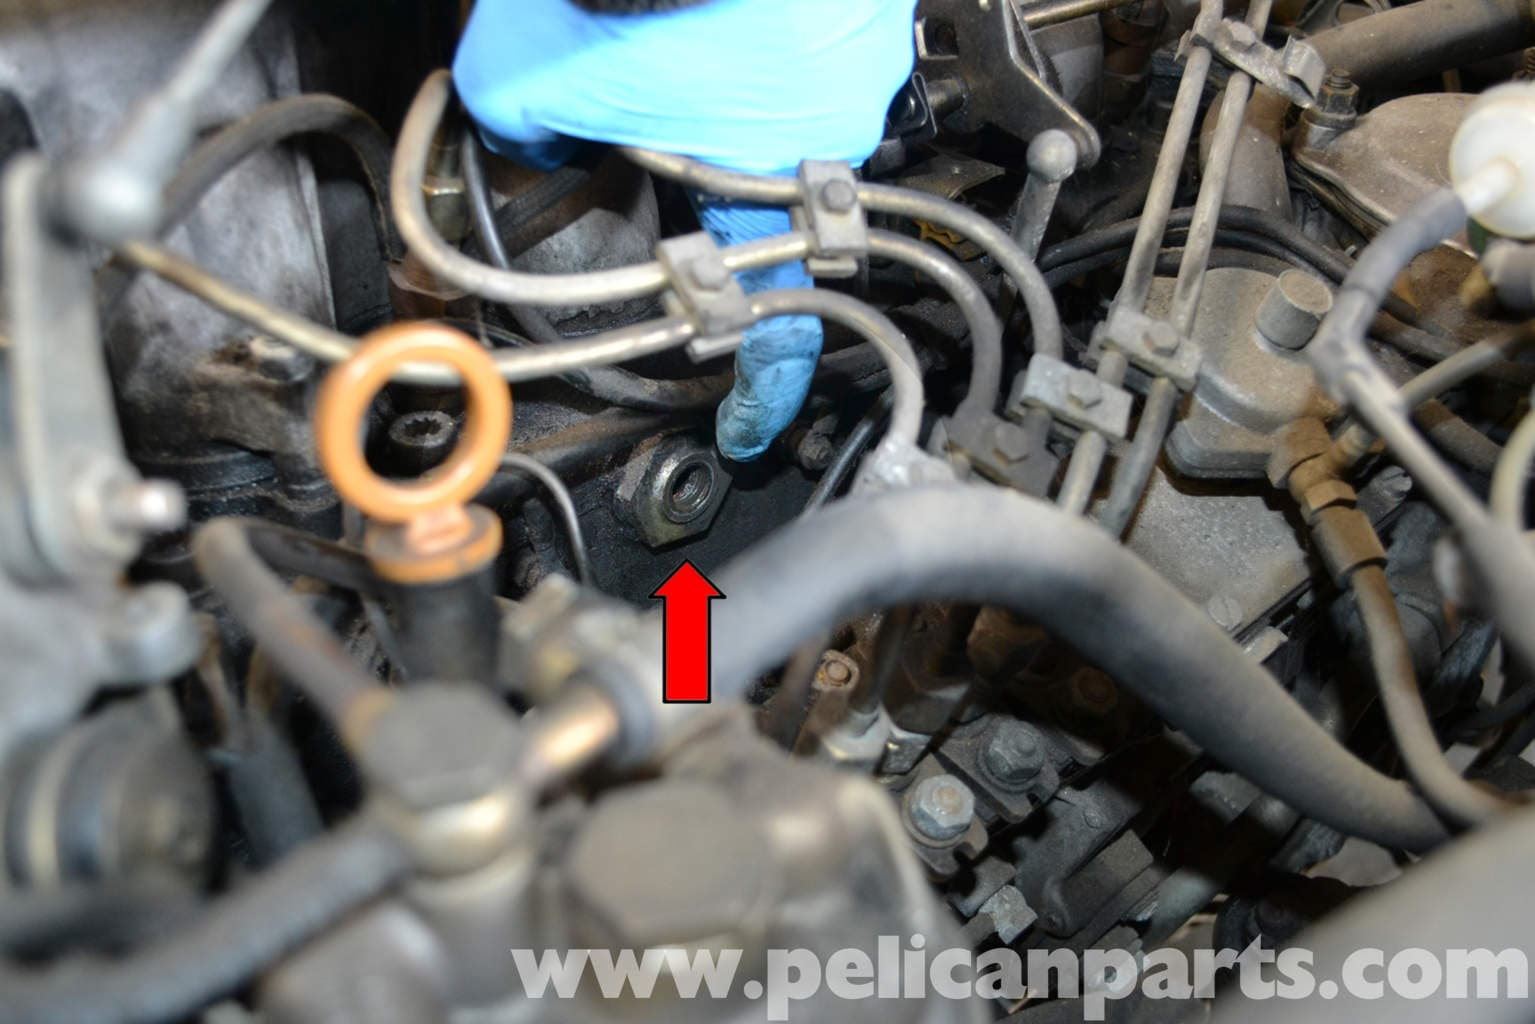 Mercedes Benz W123 Coolant Temperature Sensor Replacement 300td 300d Window Switch Wiring Diagram Large Image